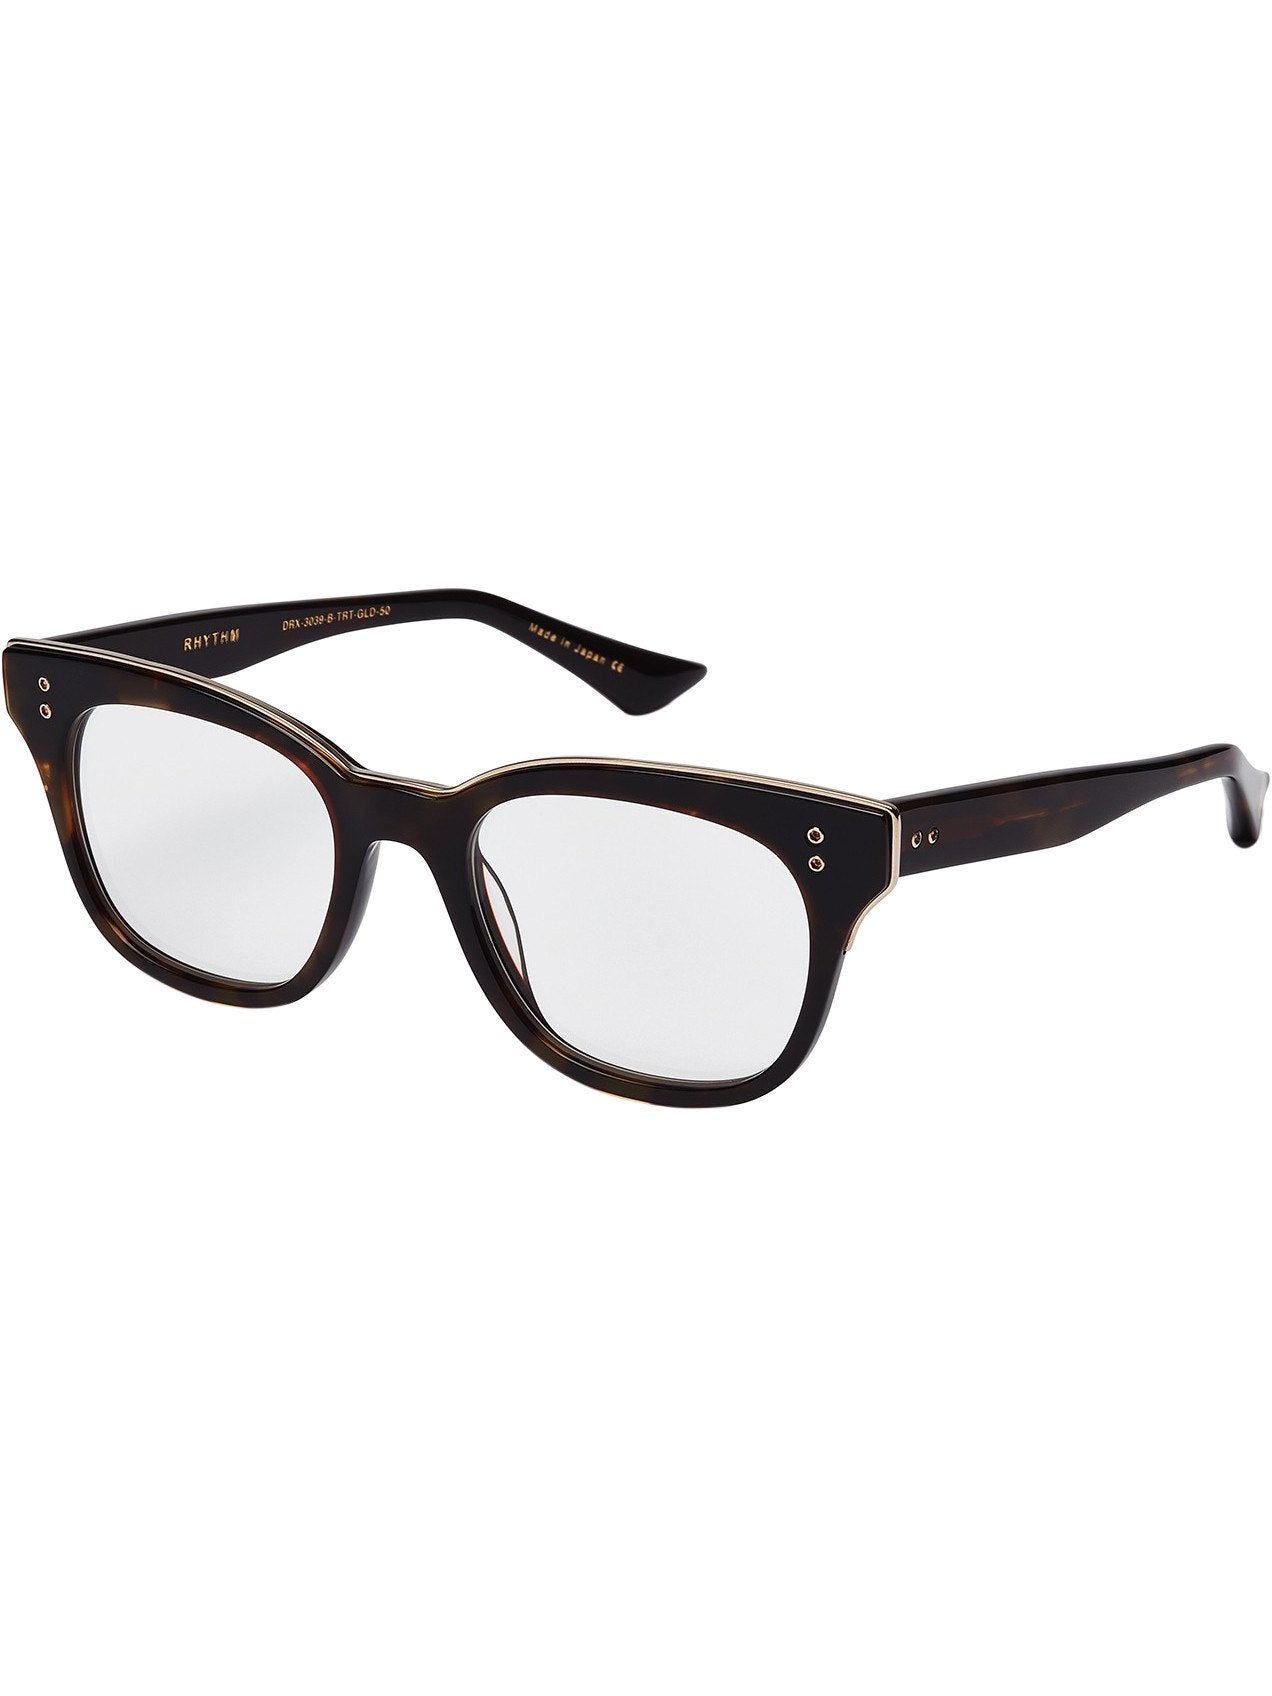 Optical Frame - Dita Rhythm DRX-3039-B Glasses